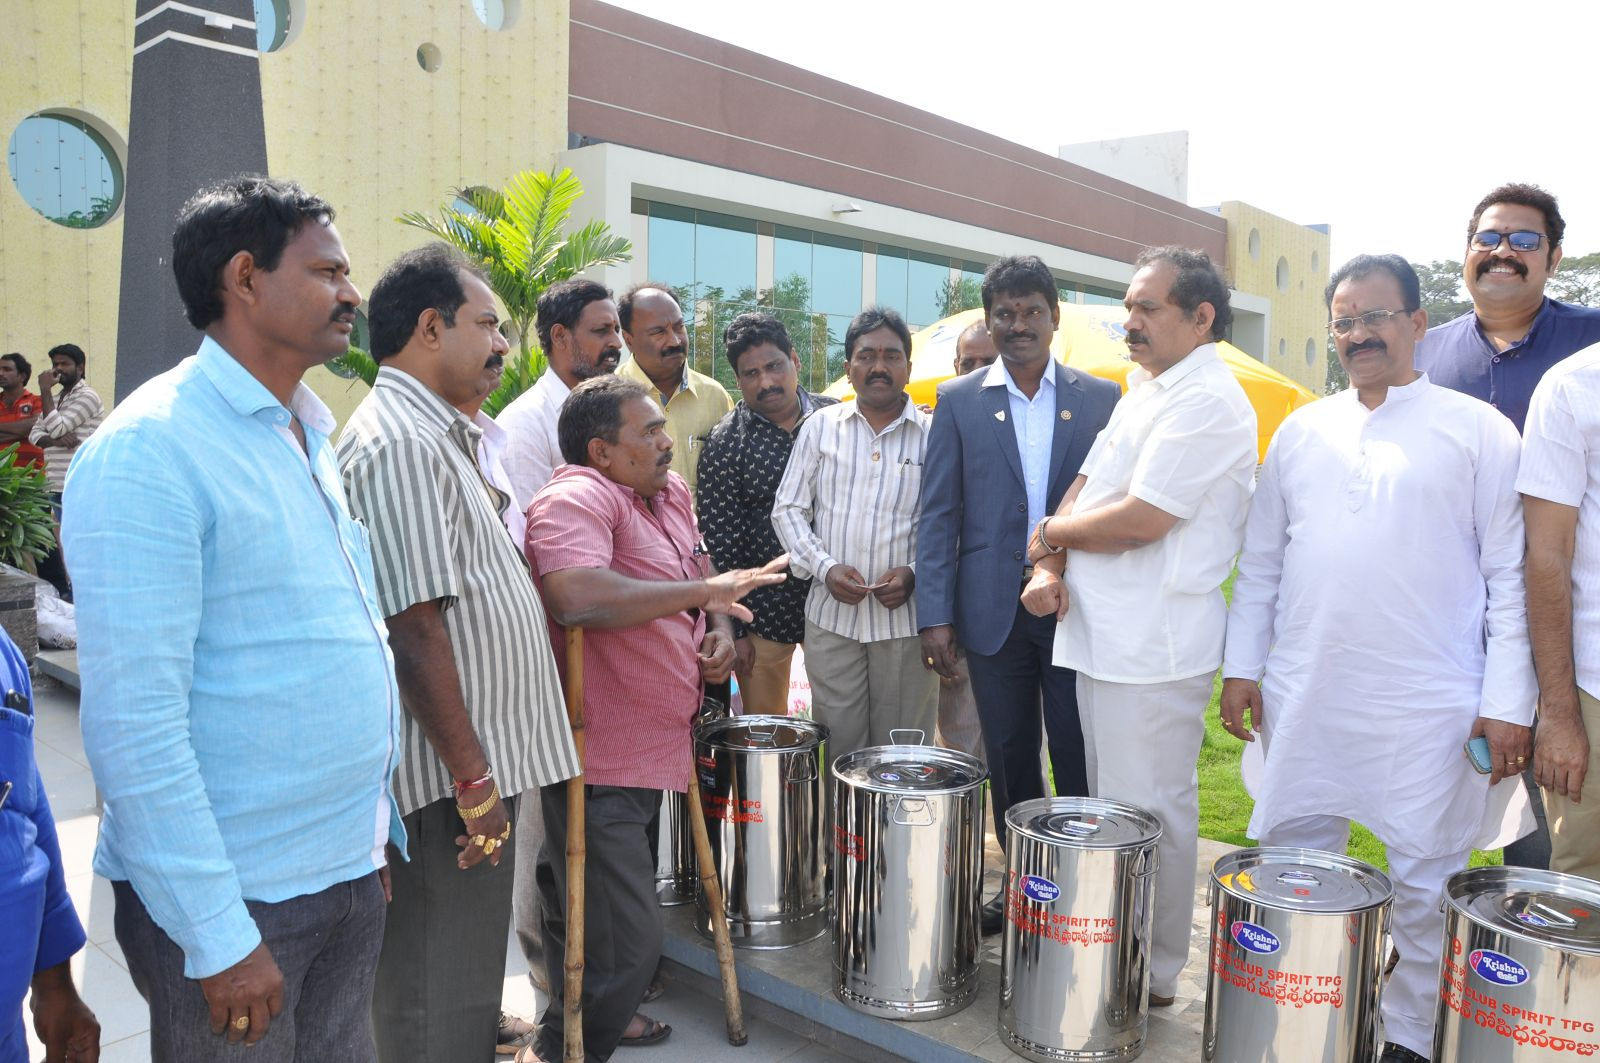 Donated 10 Steel Drums for FOOD Collection of No Food Waste